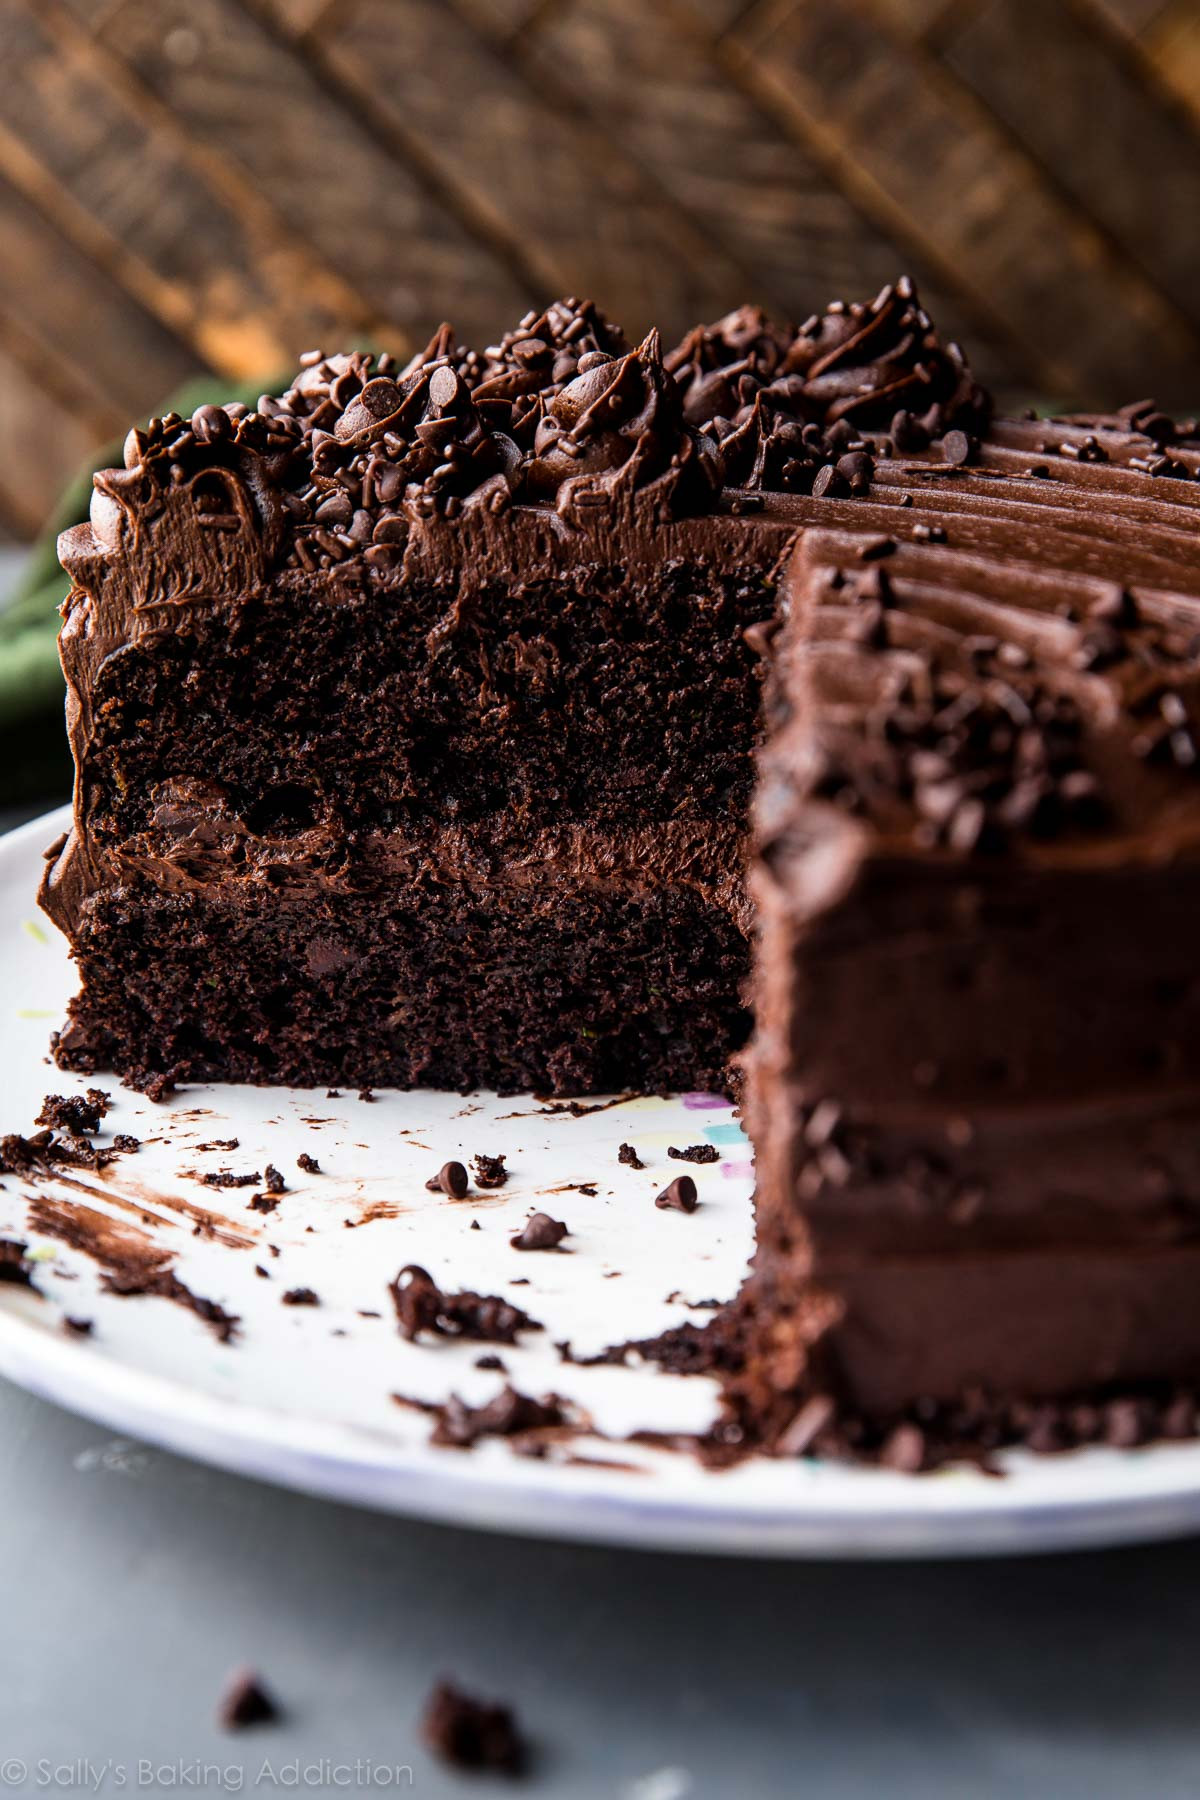 Best Frosting For Chocolate Cake  Chocolate Zucchini Cake Sallys Baking Addiction